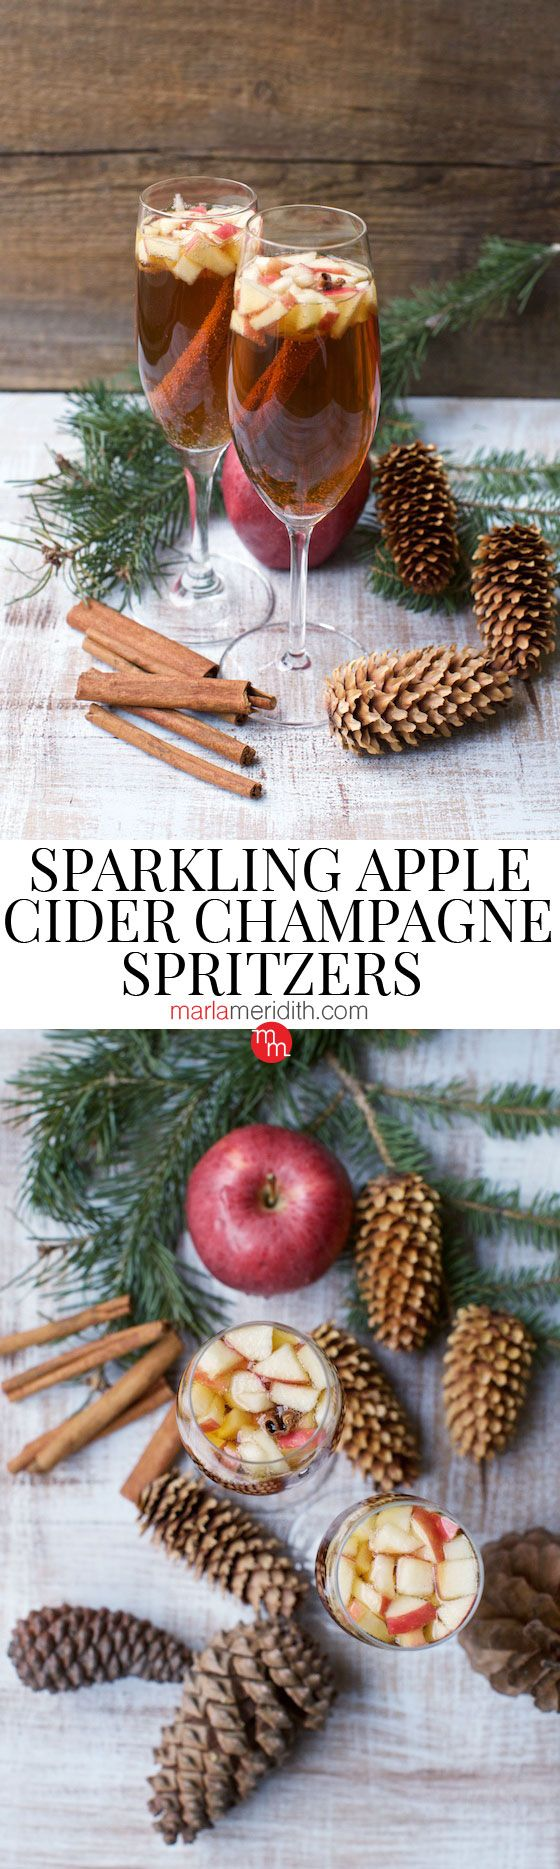 Sparkling Apple Cider Champagne Spritzers recipe. The only cocktail you need for the holidays! MarlaMeridith.com #champagne #cocktail #recipe